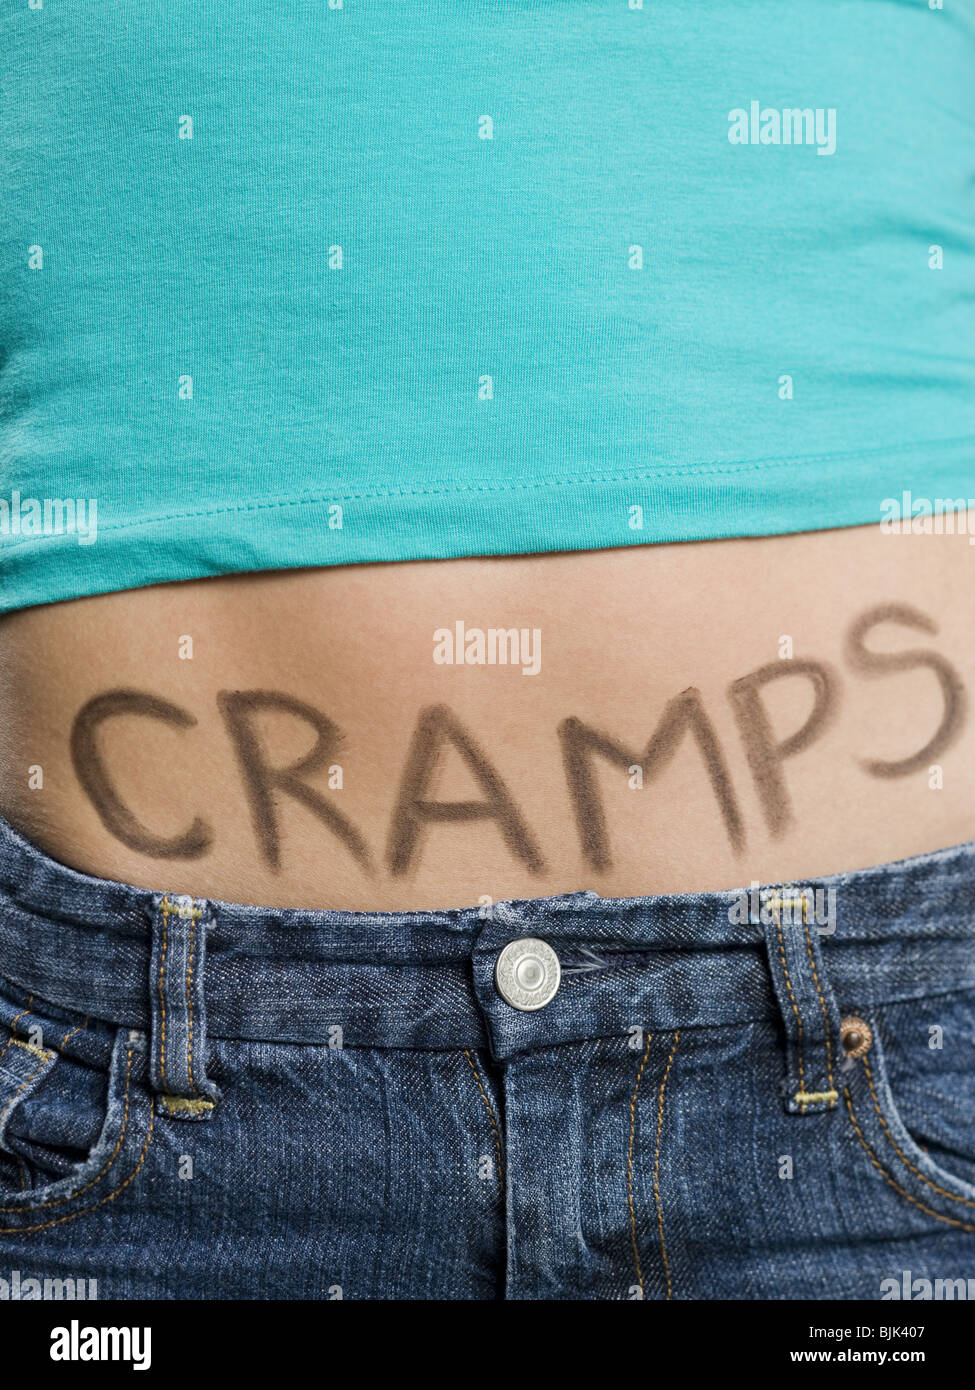 Female Abdomen with CRAMPS written on it - Stock Image